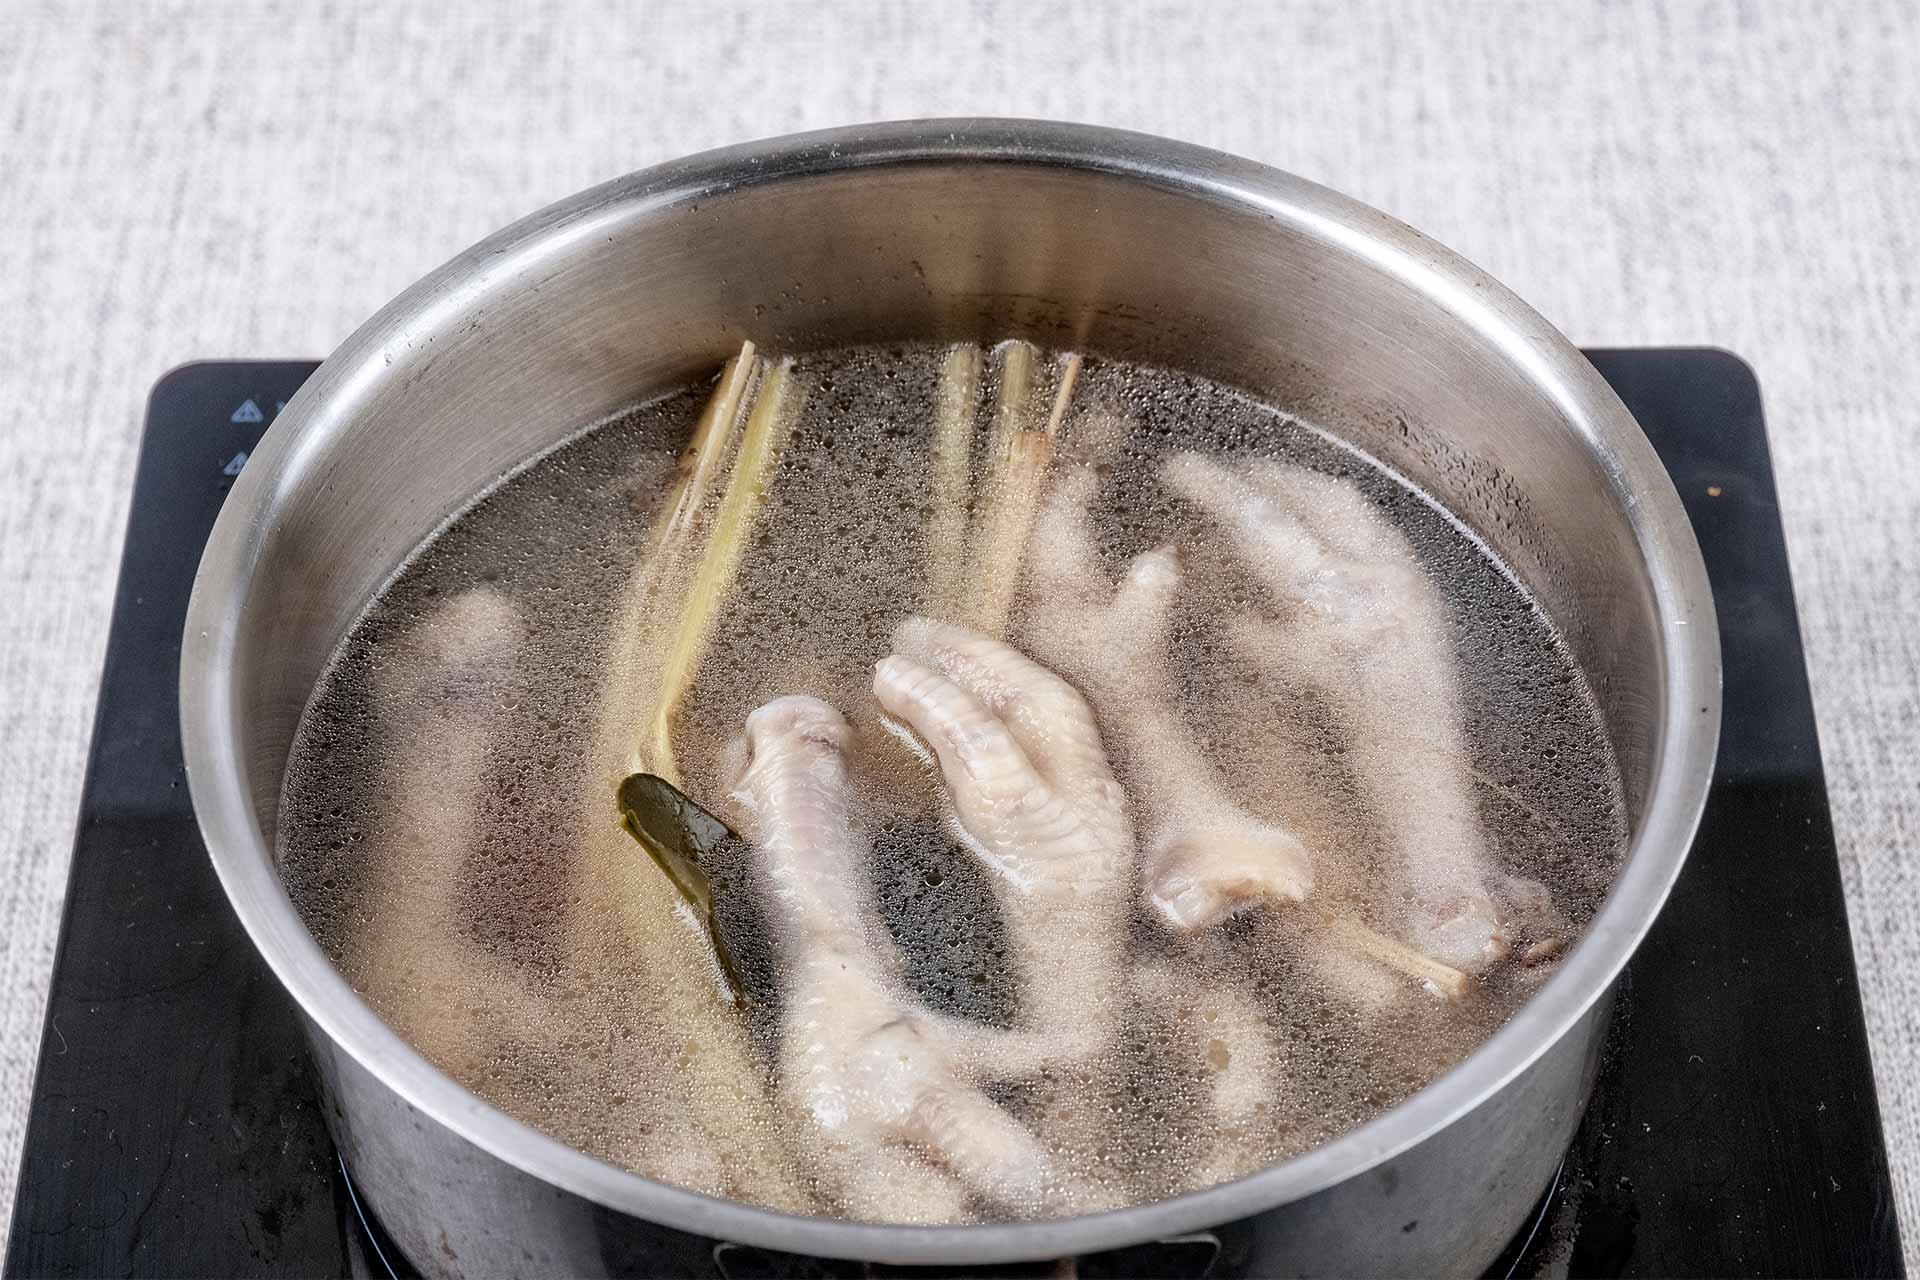 Boil the chicken claws